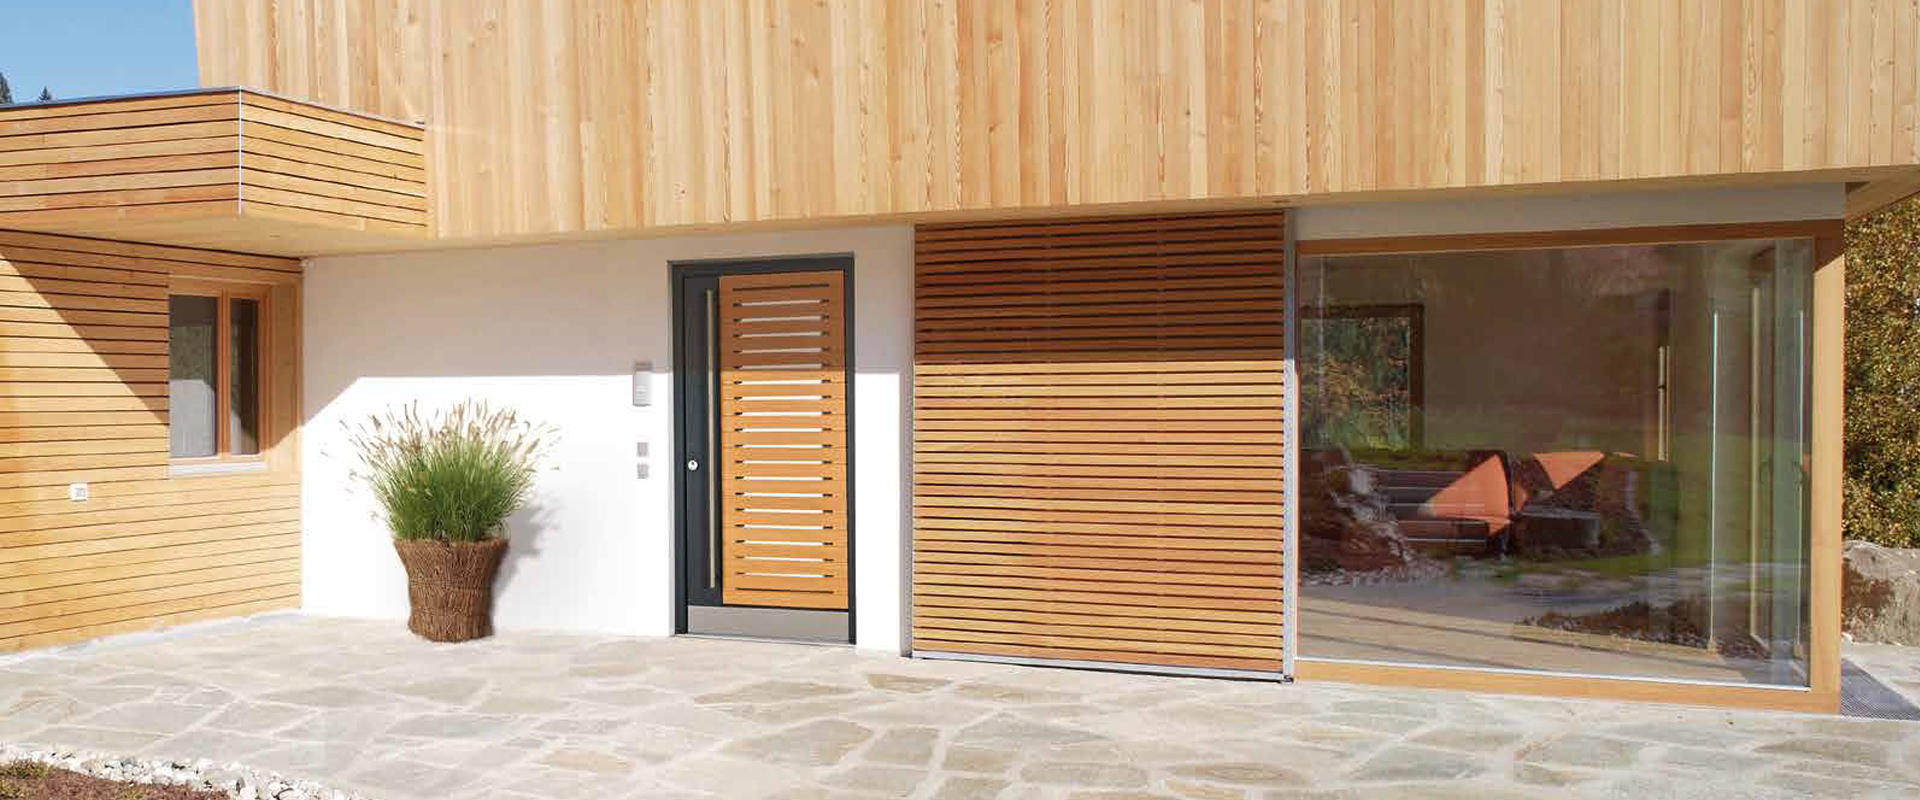 Modern External Front Doors German Quality New Front Door For Your House